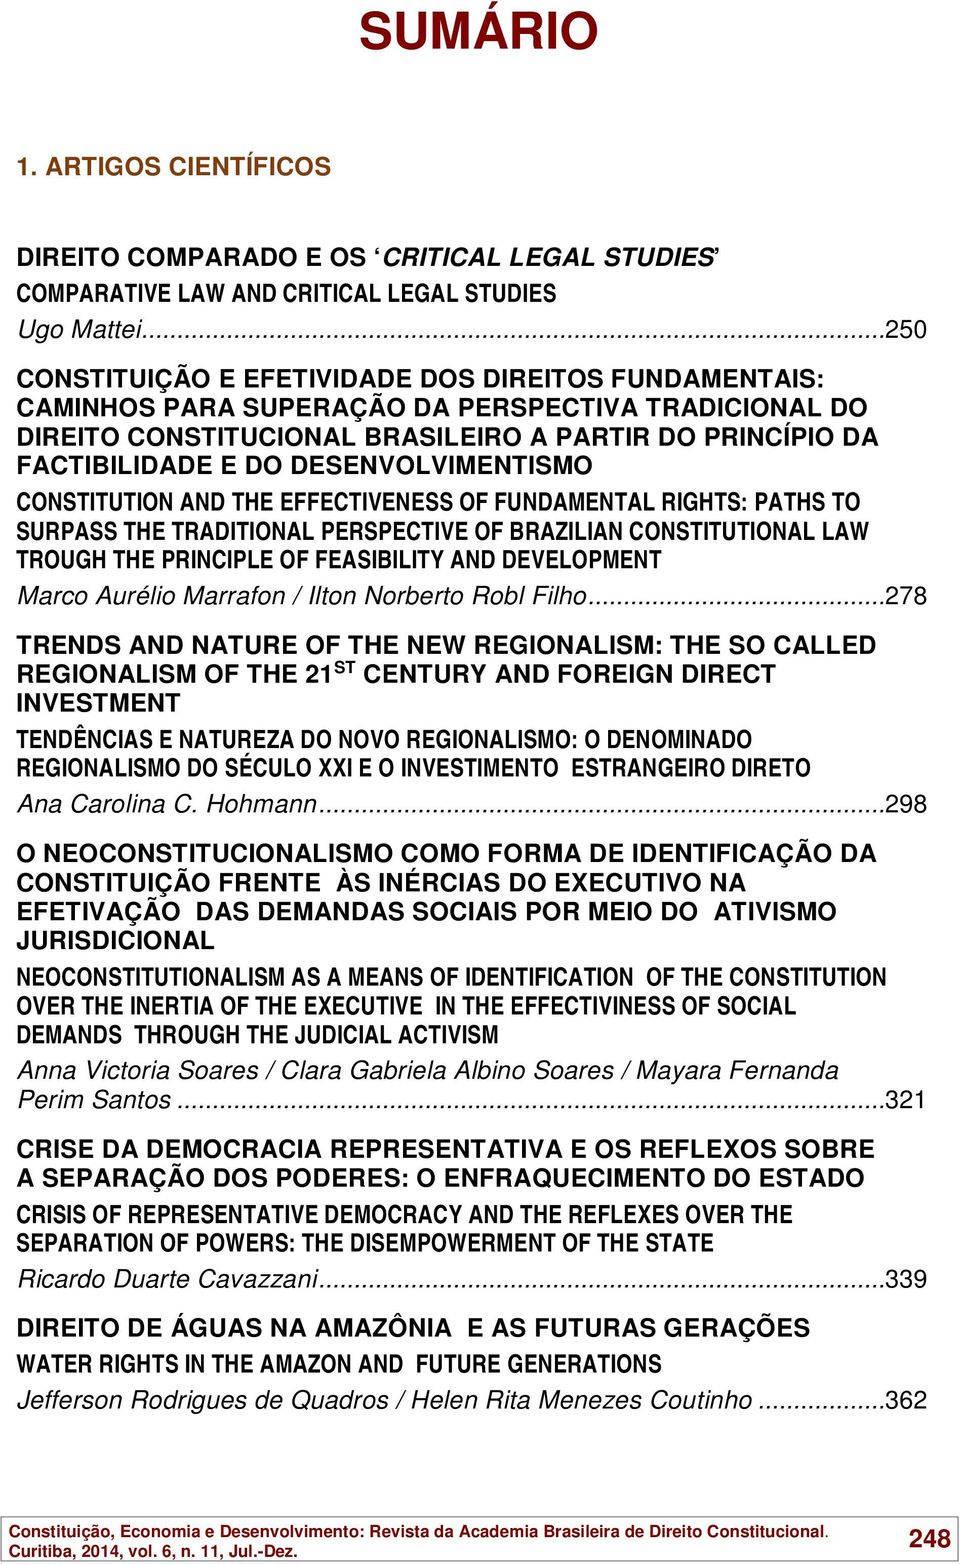 DESENVOLVIMENTISMO CONSTITUTION AND THE EFFECTIVENESS OF FUNDAMENTAL RIGHTS: PATHS TO SURPASS THE TRADITIONAL PERSPECTIVE OF BRAZILIAN CONSTITUTIONAL LAW TROUGH THE PRINCIPLE OF FEASIBILITY AND